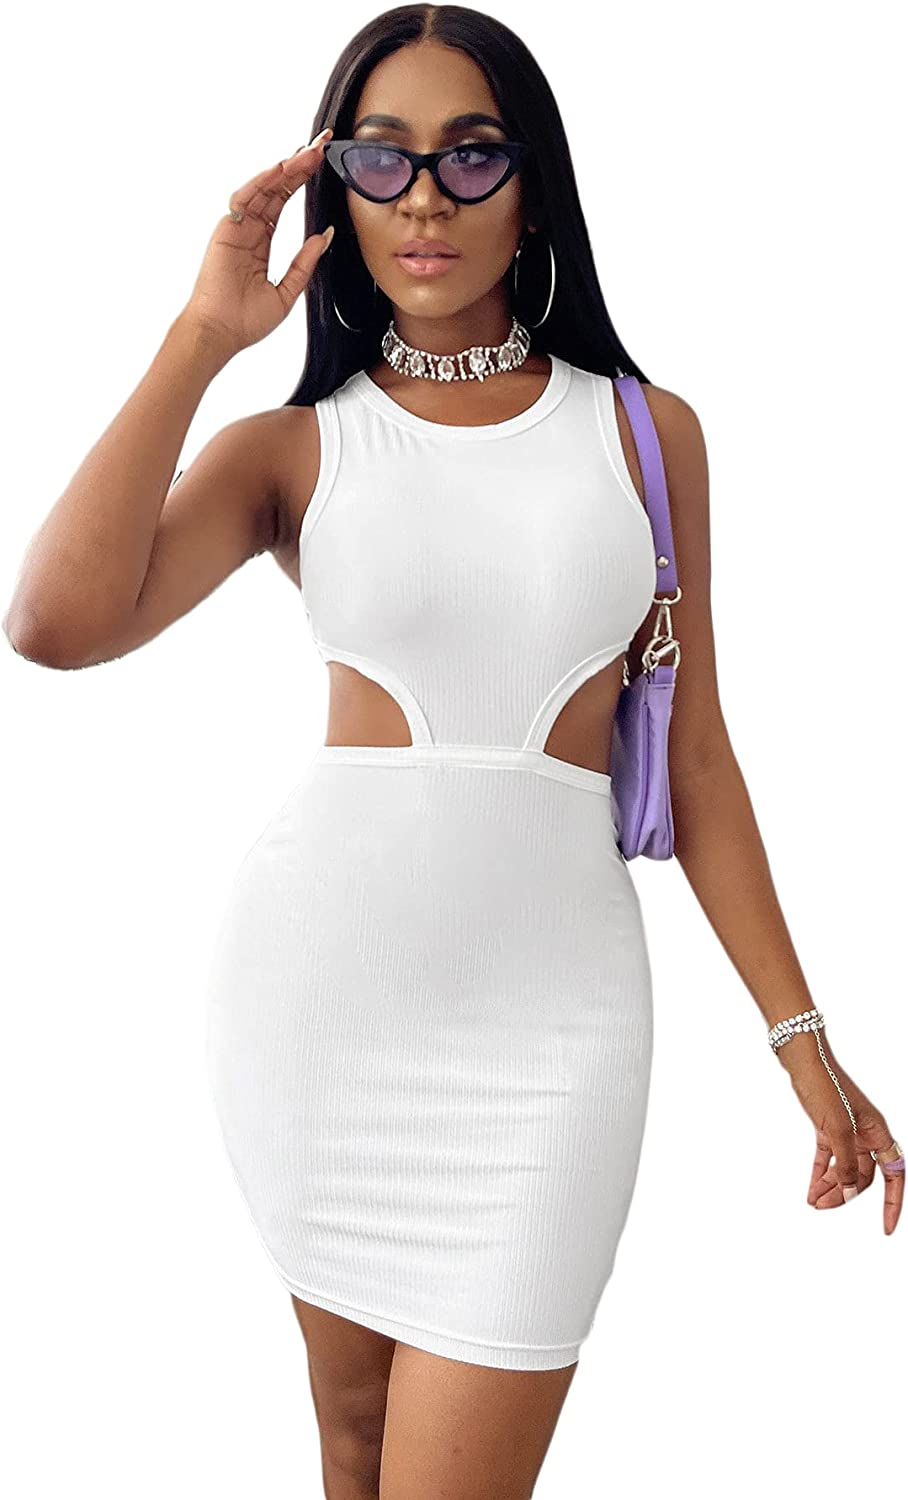 SheIn Women's Cut Out Mini Bodycon Dress Sleeveless Round Neck Solid Short Dresses